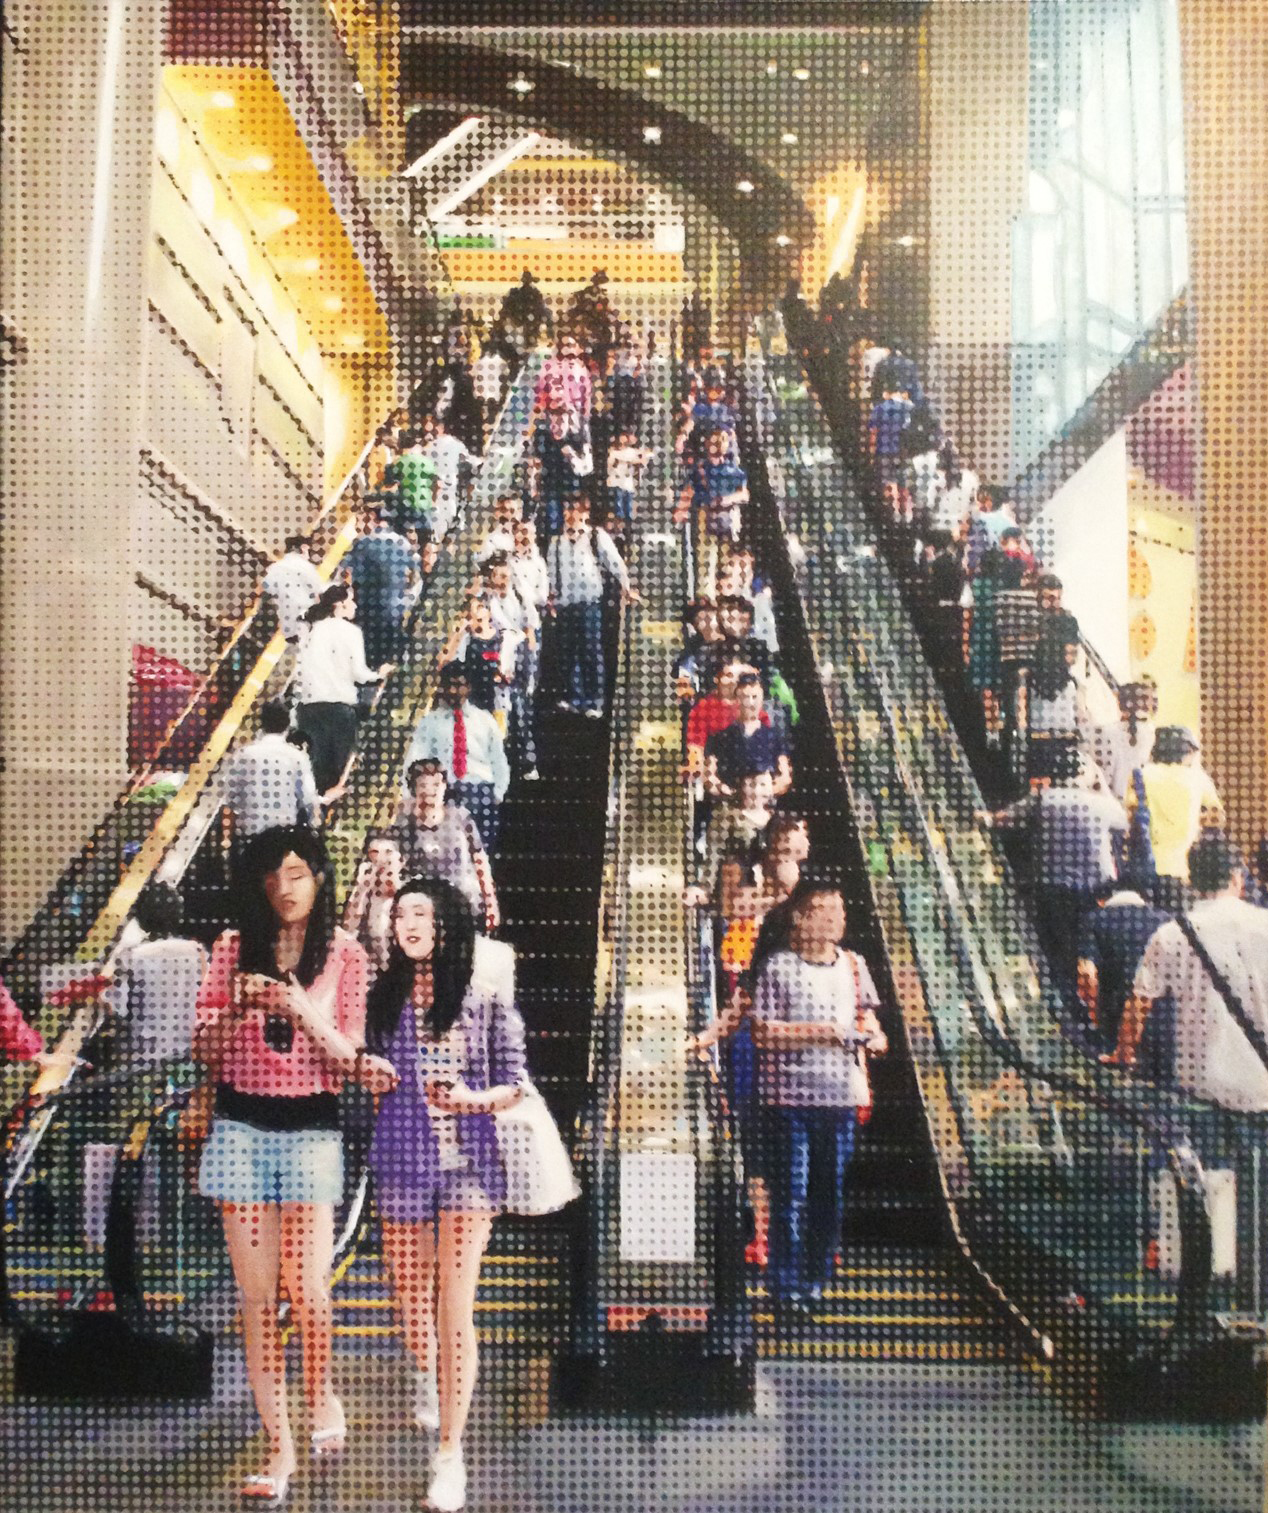 Maec de Jong, Escalators oil on canvas, 170 x 140 cm, available